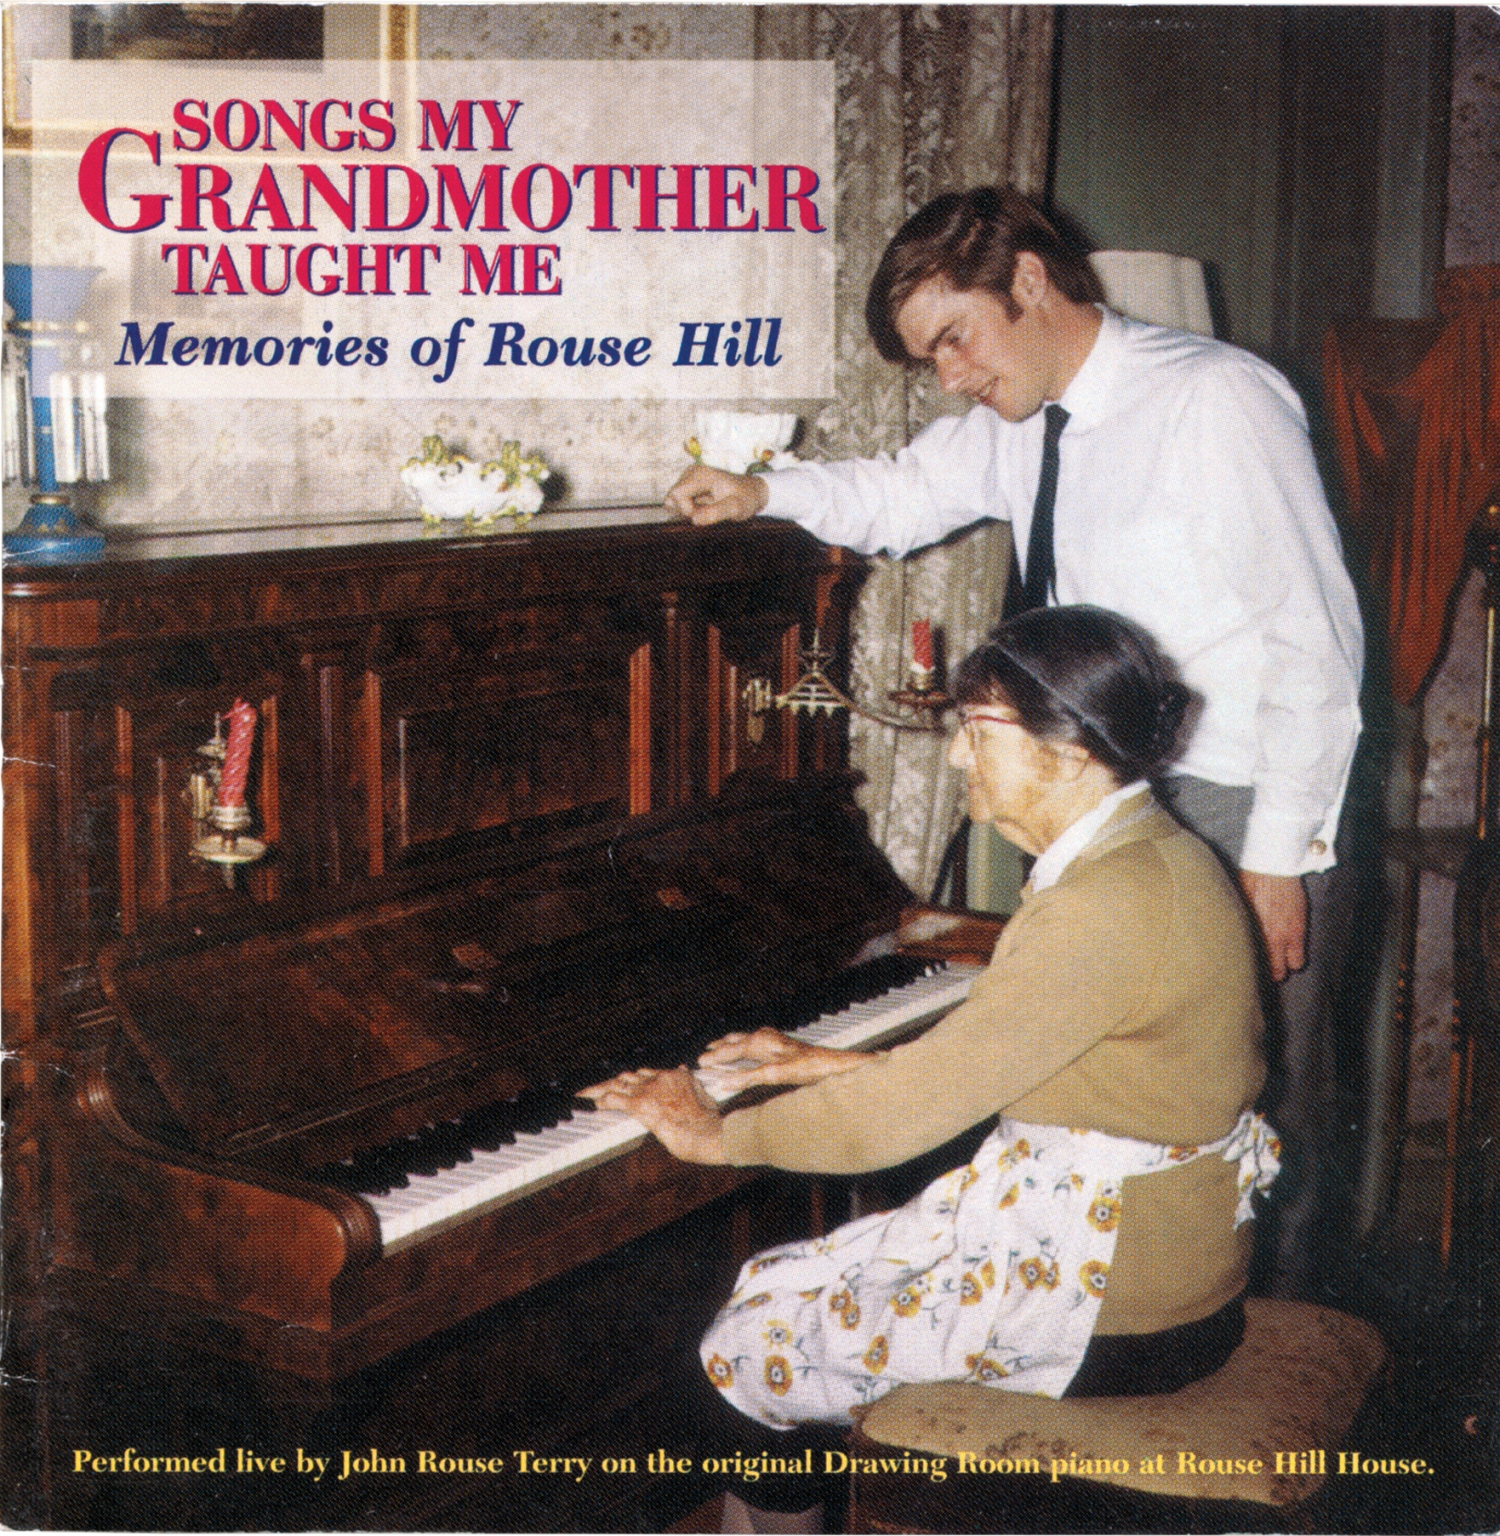 Cover of album with woman seated at piano playing while young man looks on.